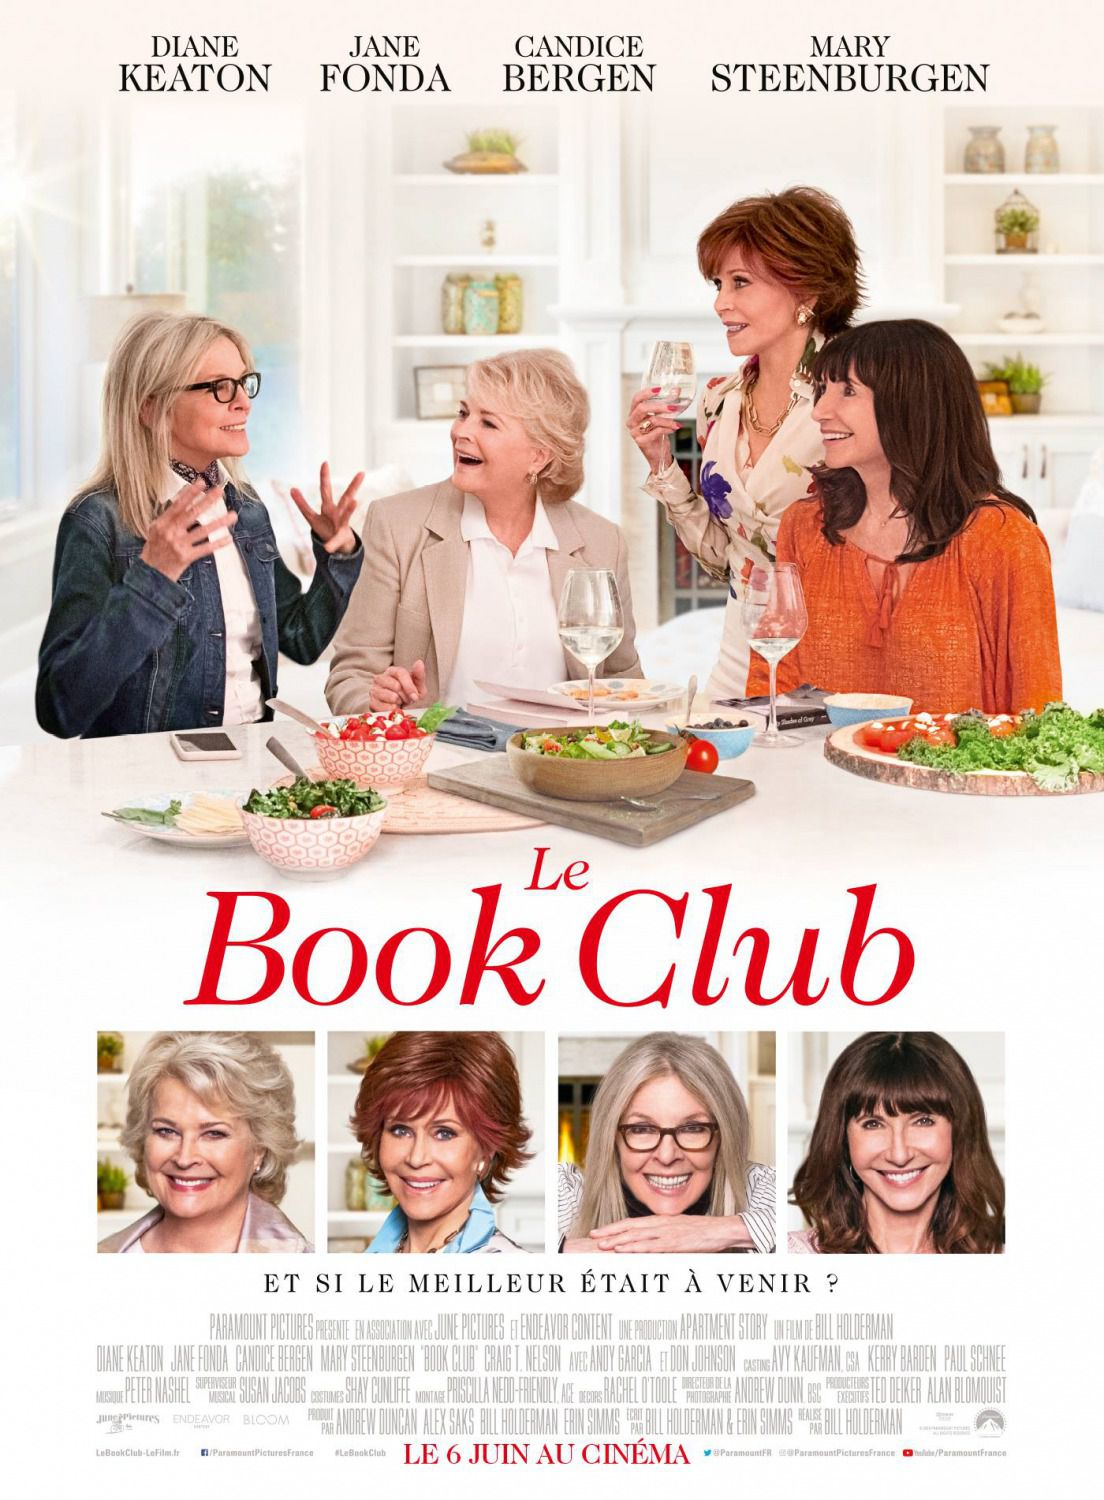 Book Club - Diane Keaton, Jane Fonda, Candice Bergen, Mary Steenburgen - comedy film poster 2018